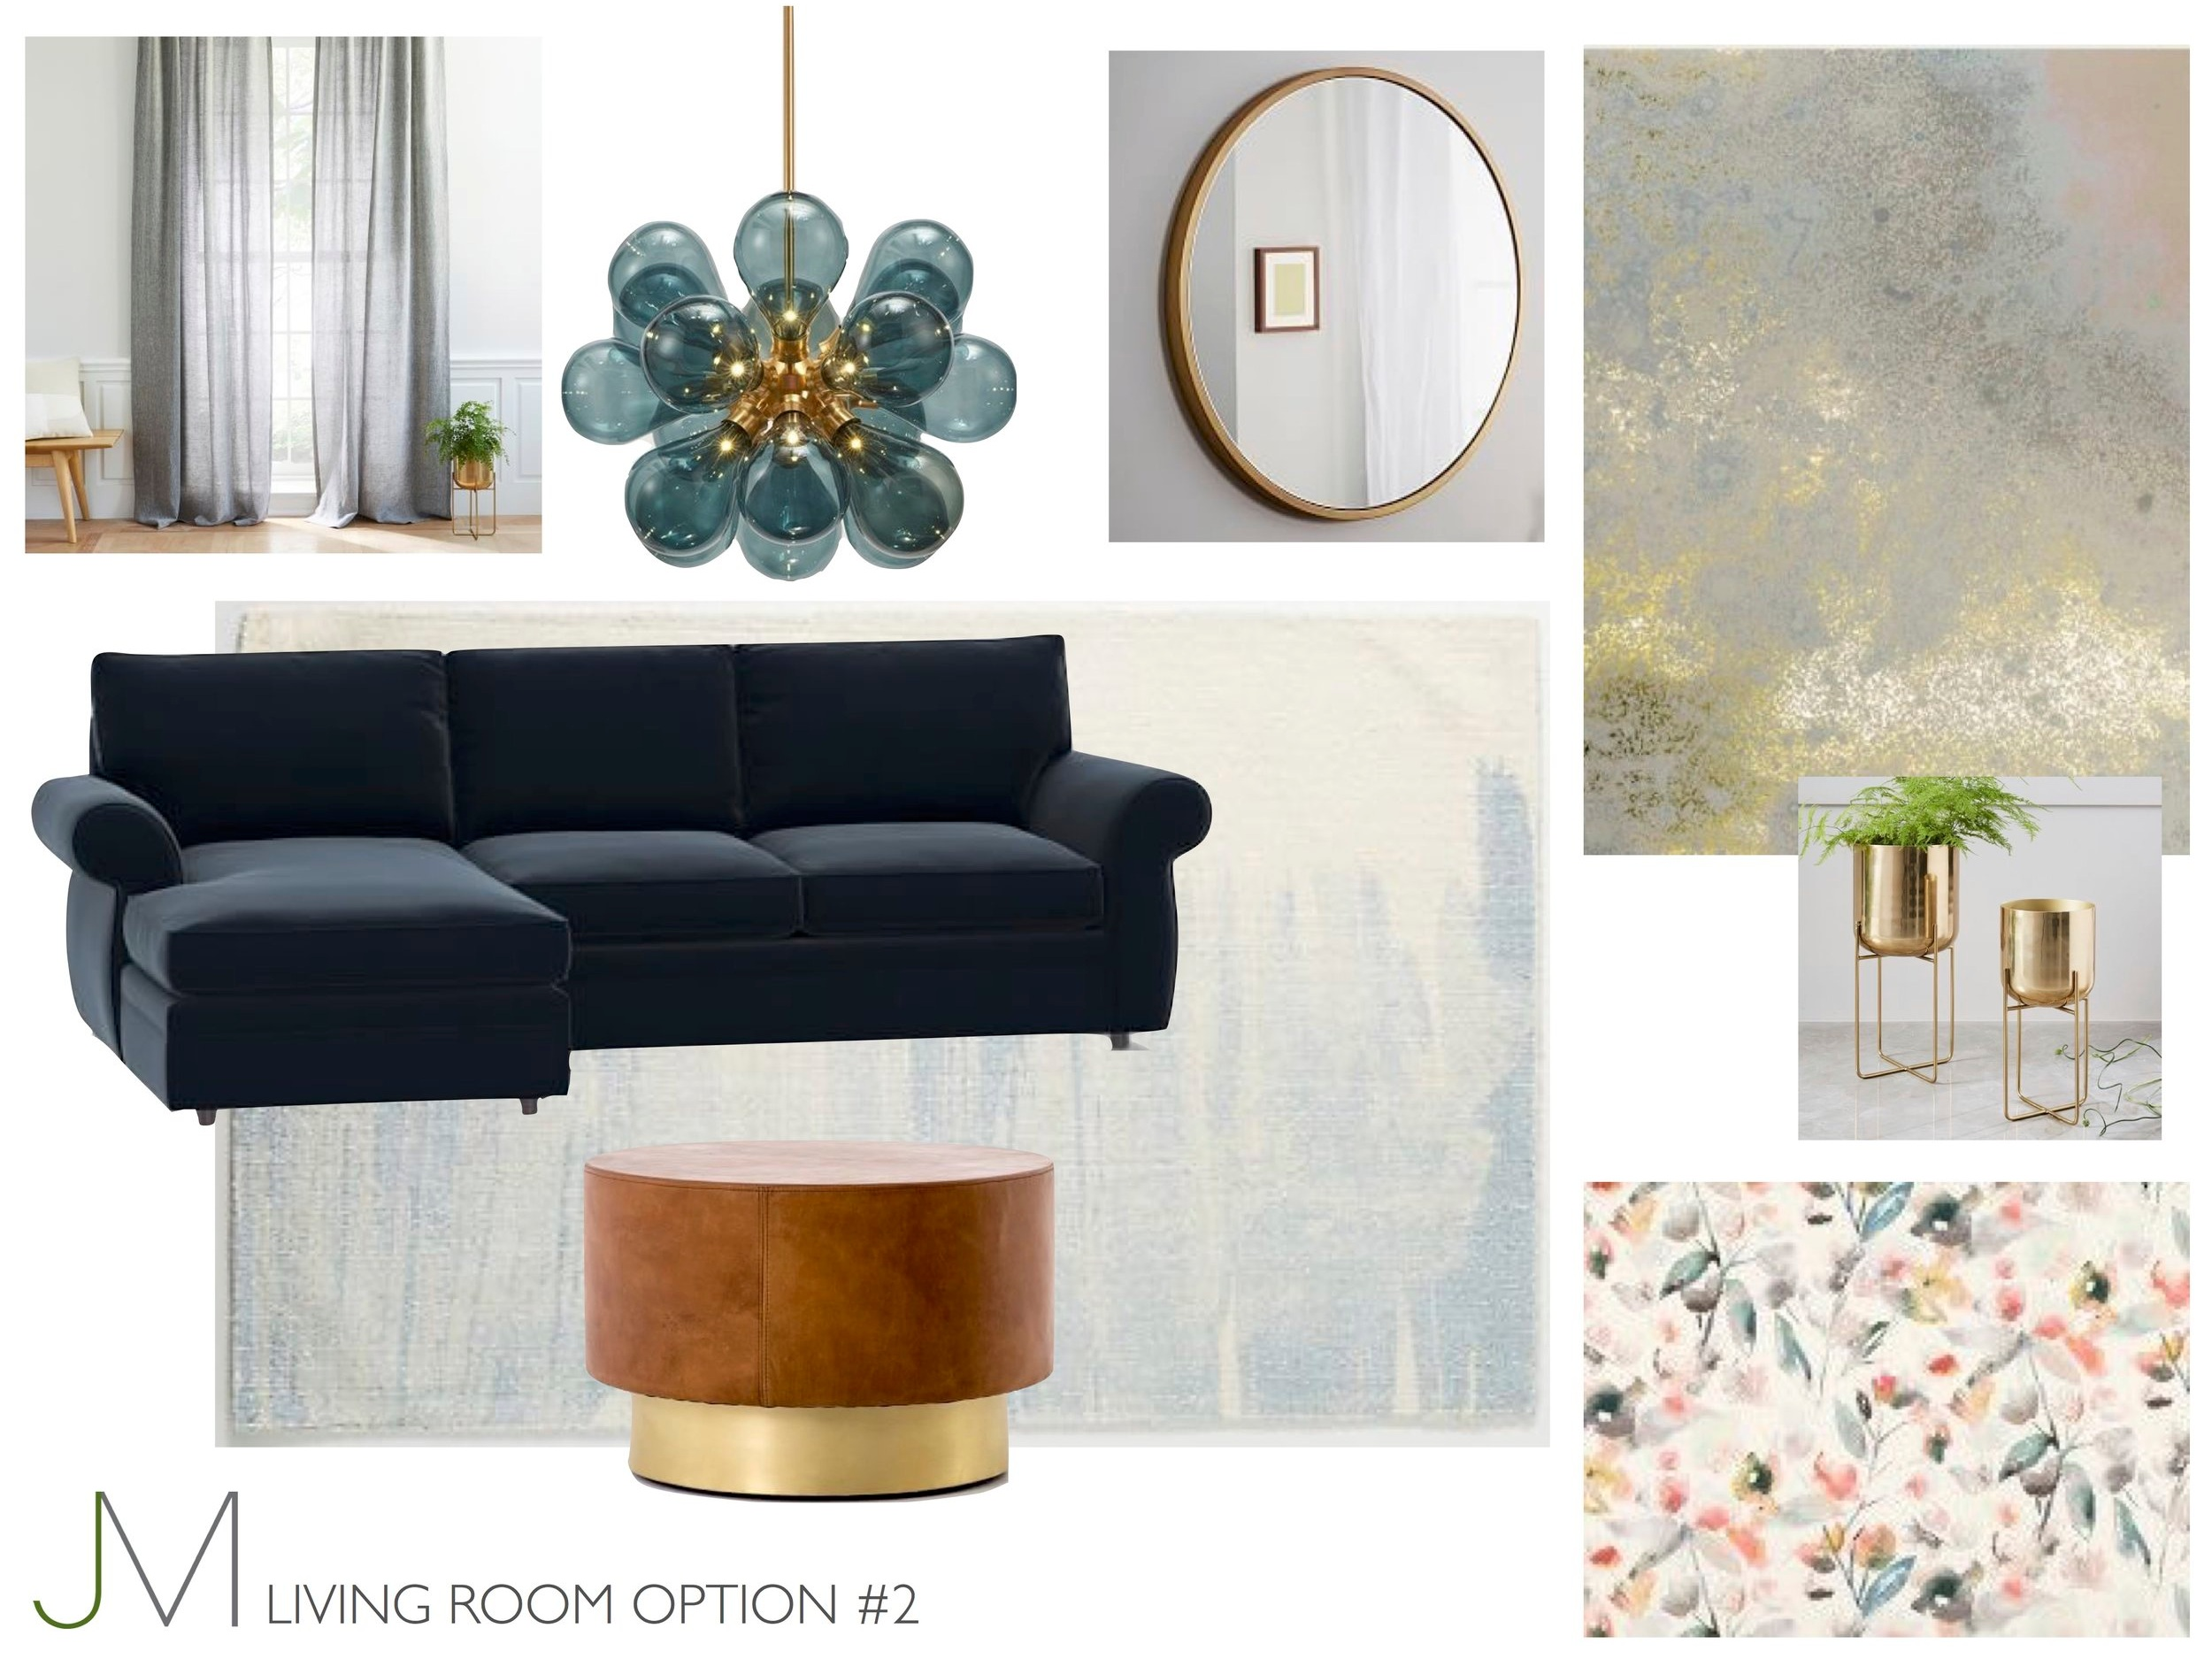 Living room e-design mood board by  JMorris Design